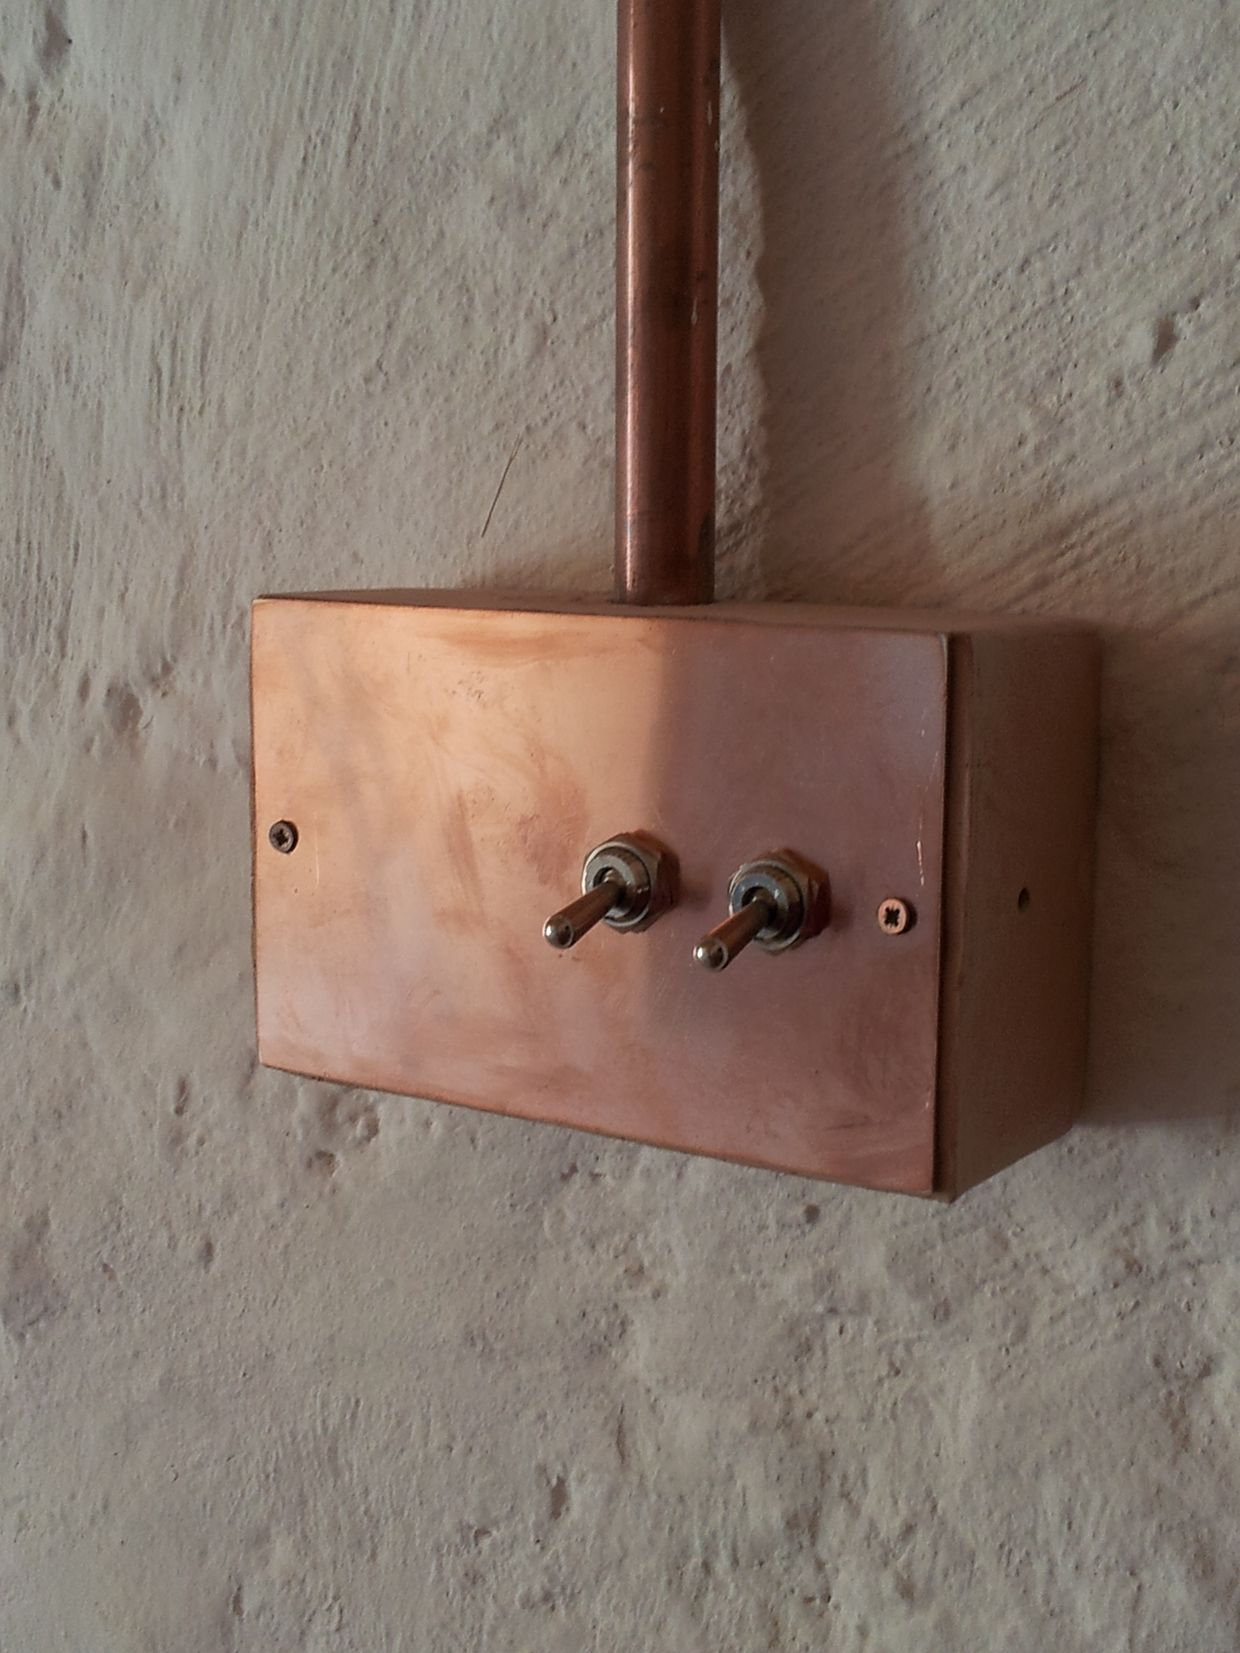 Pin By Nathan On Light Switches Electrical Wiring